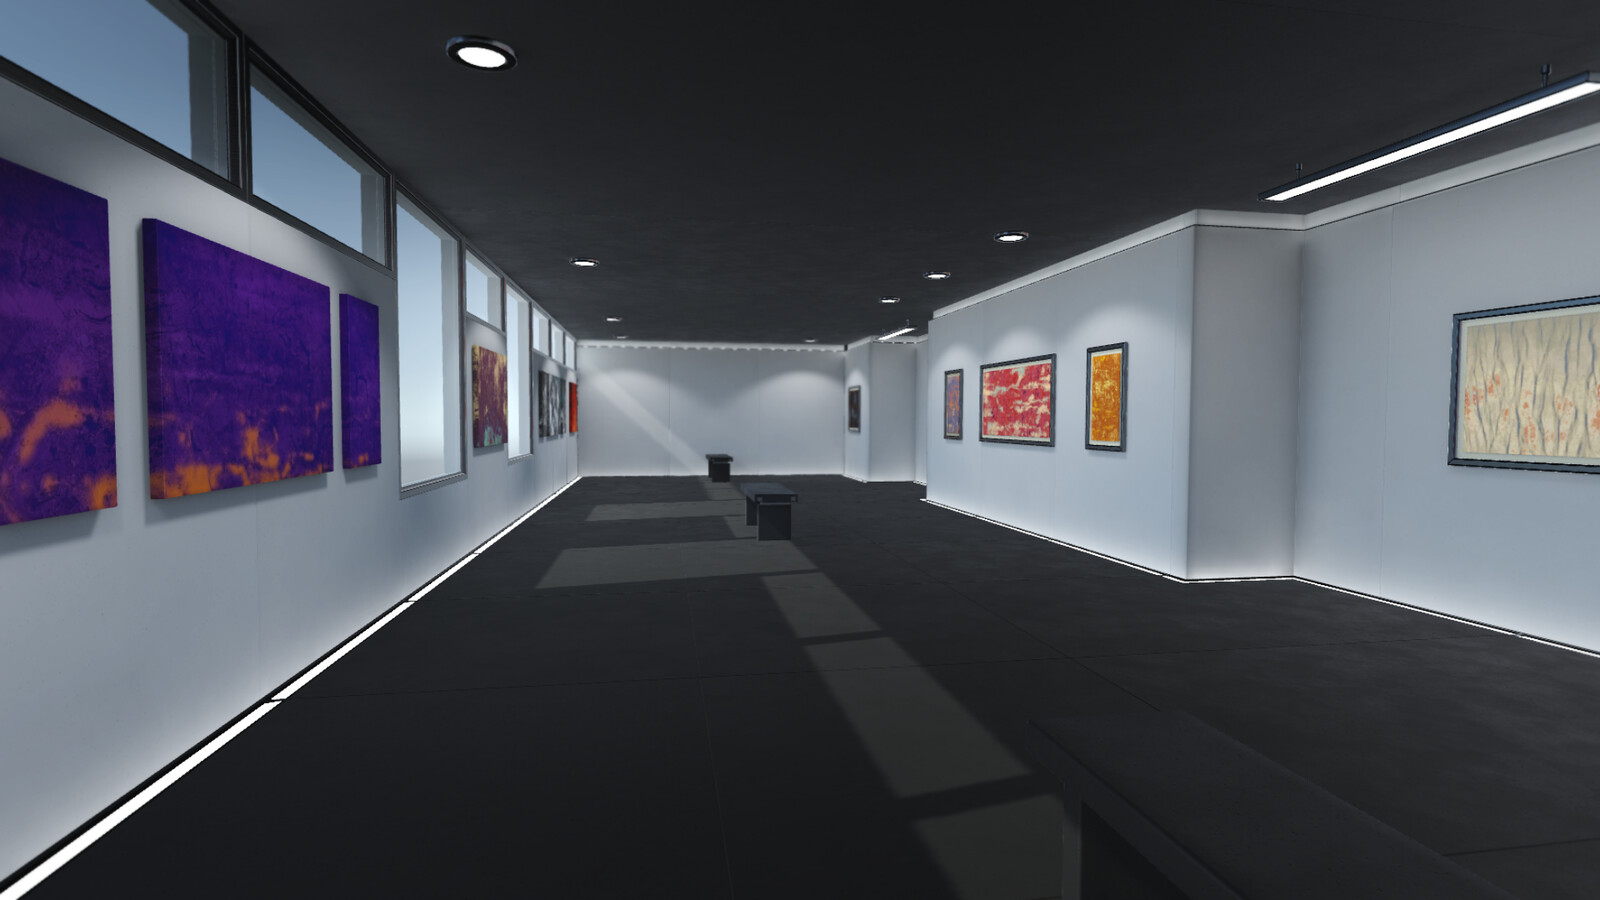 And the gallery demo in Unity